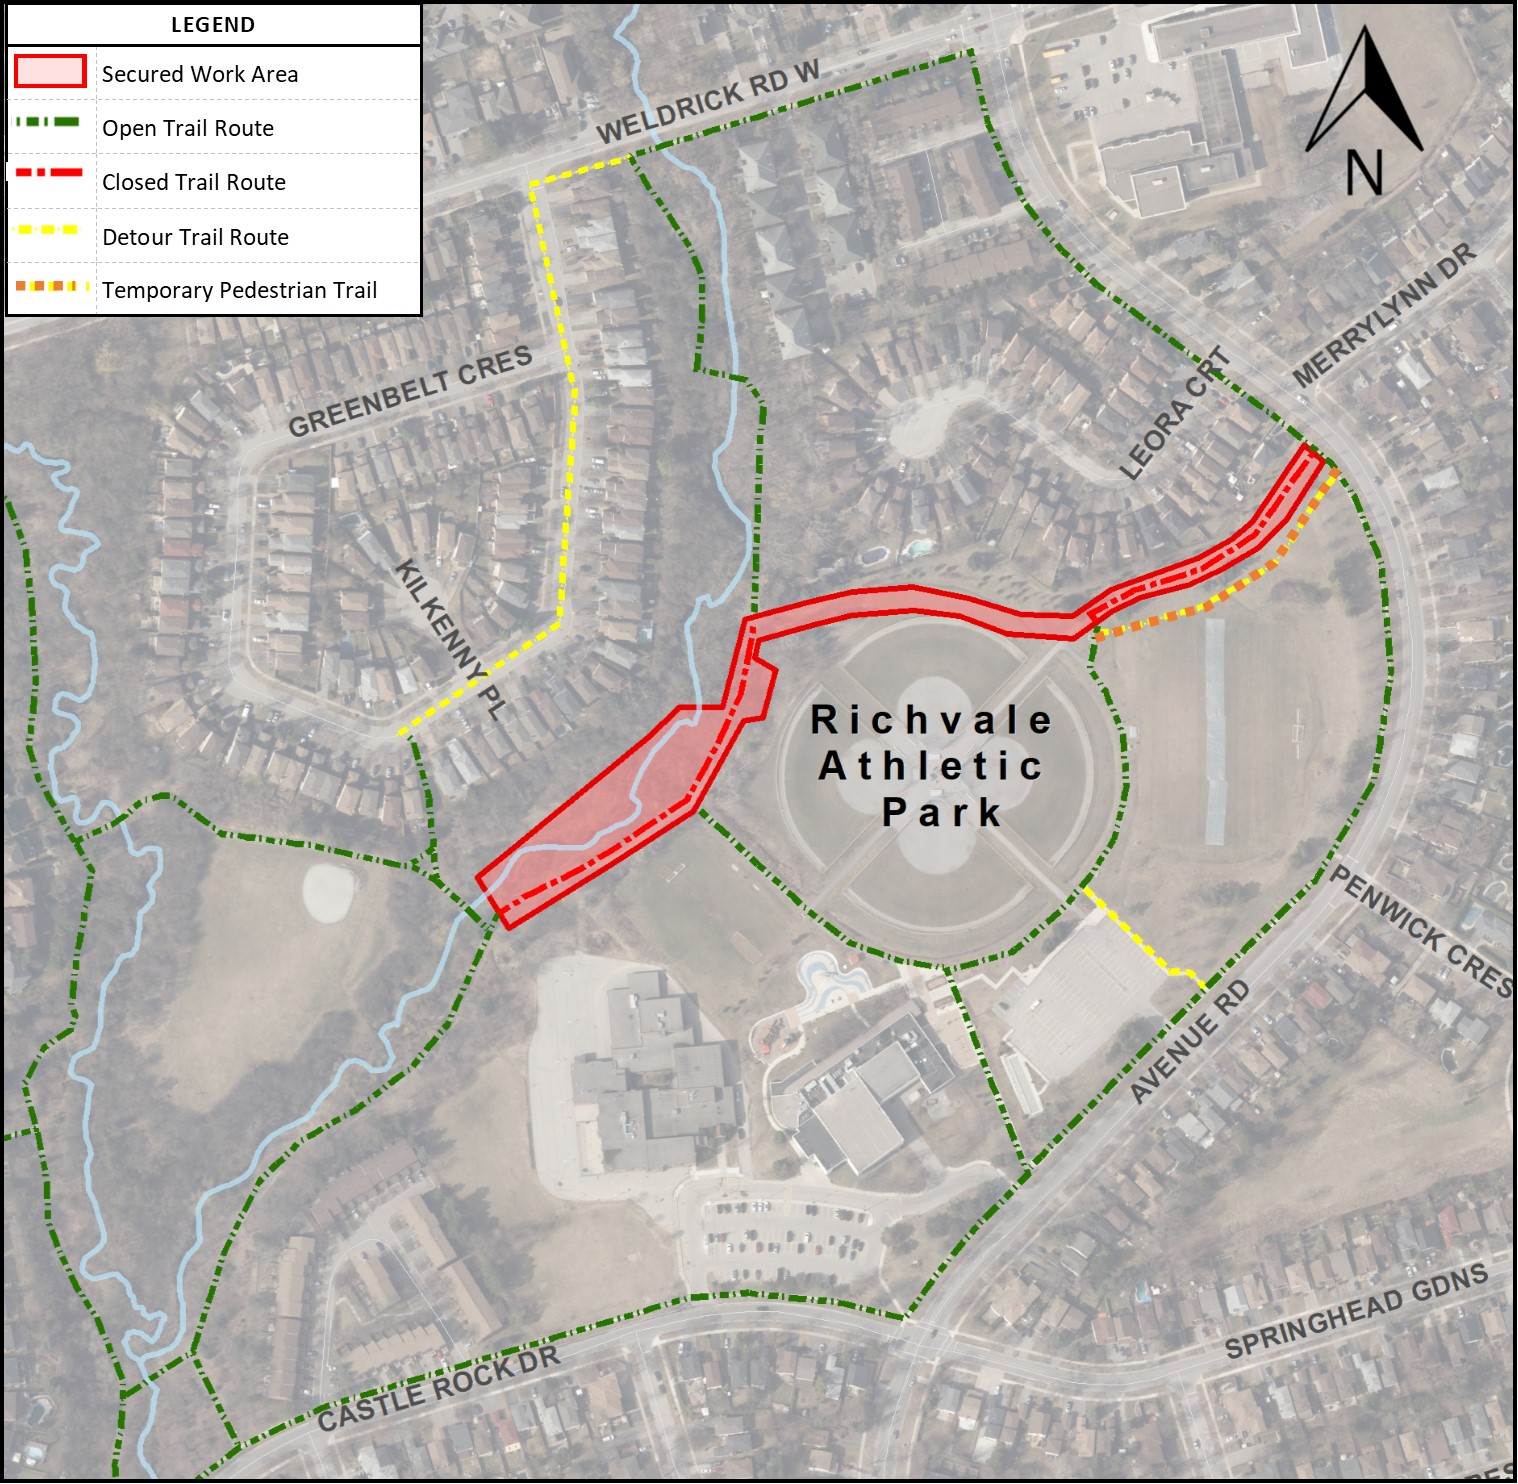 map showing trail closures in richvale athletic park